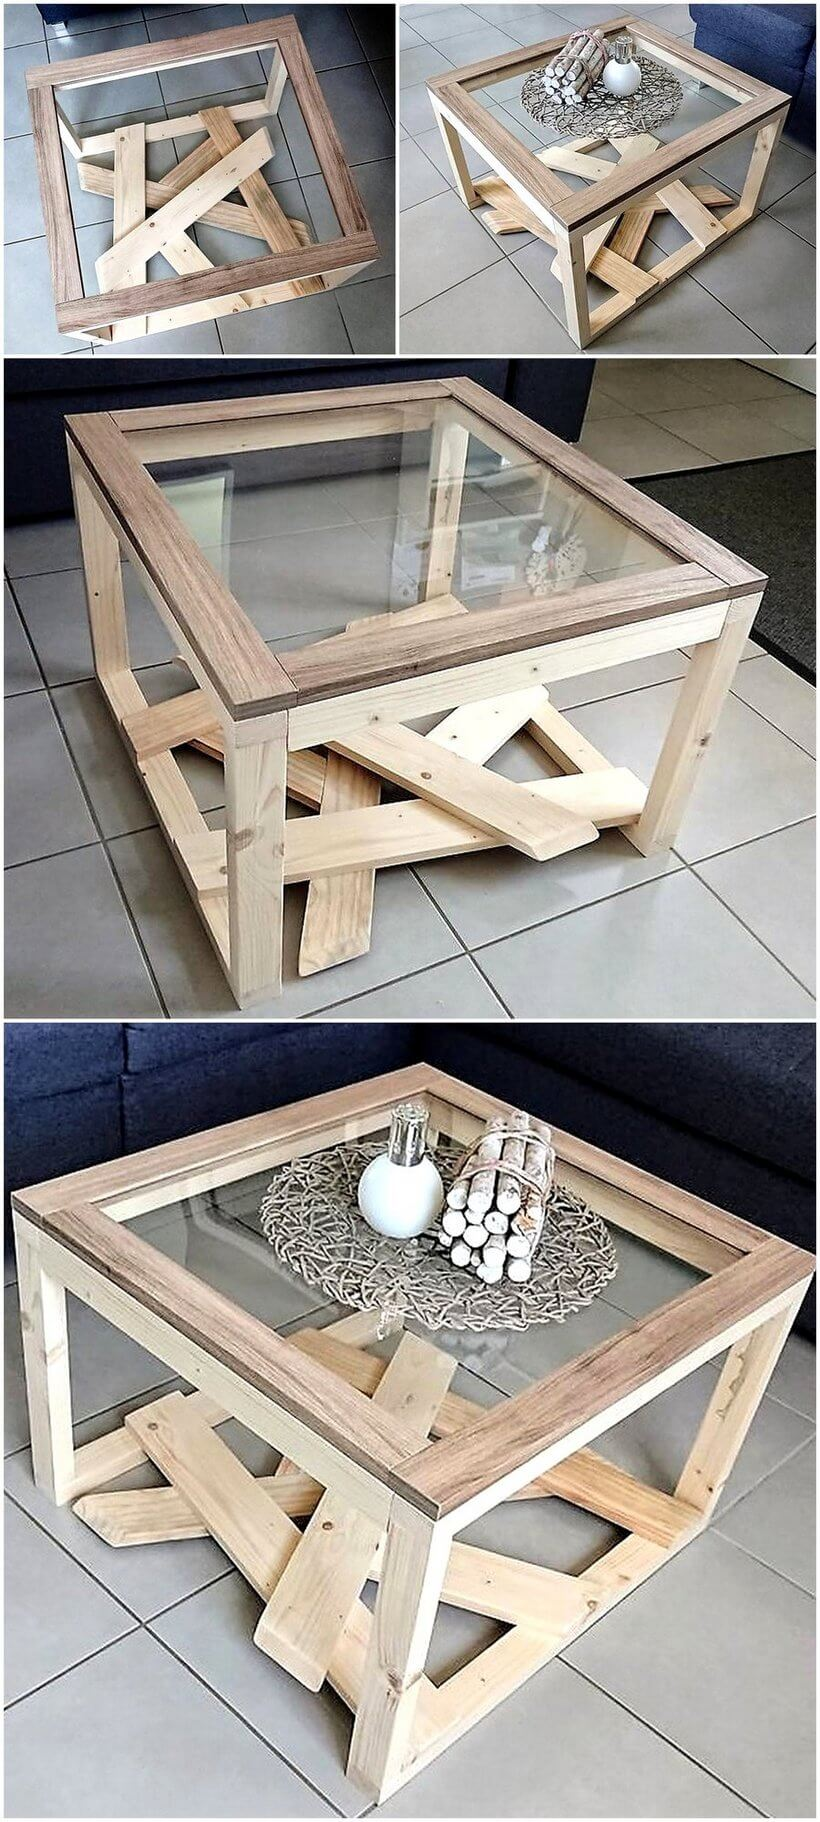 reused pallet table project